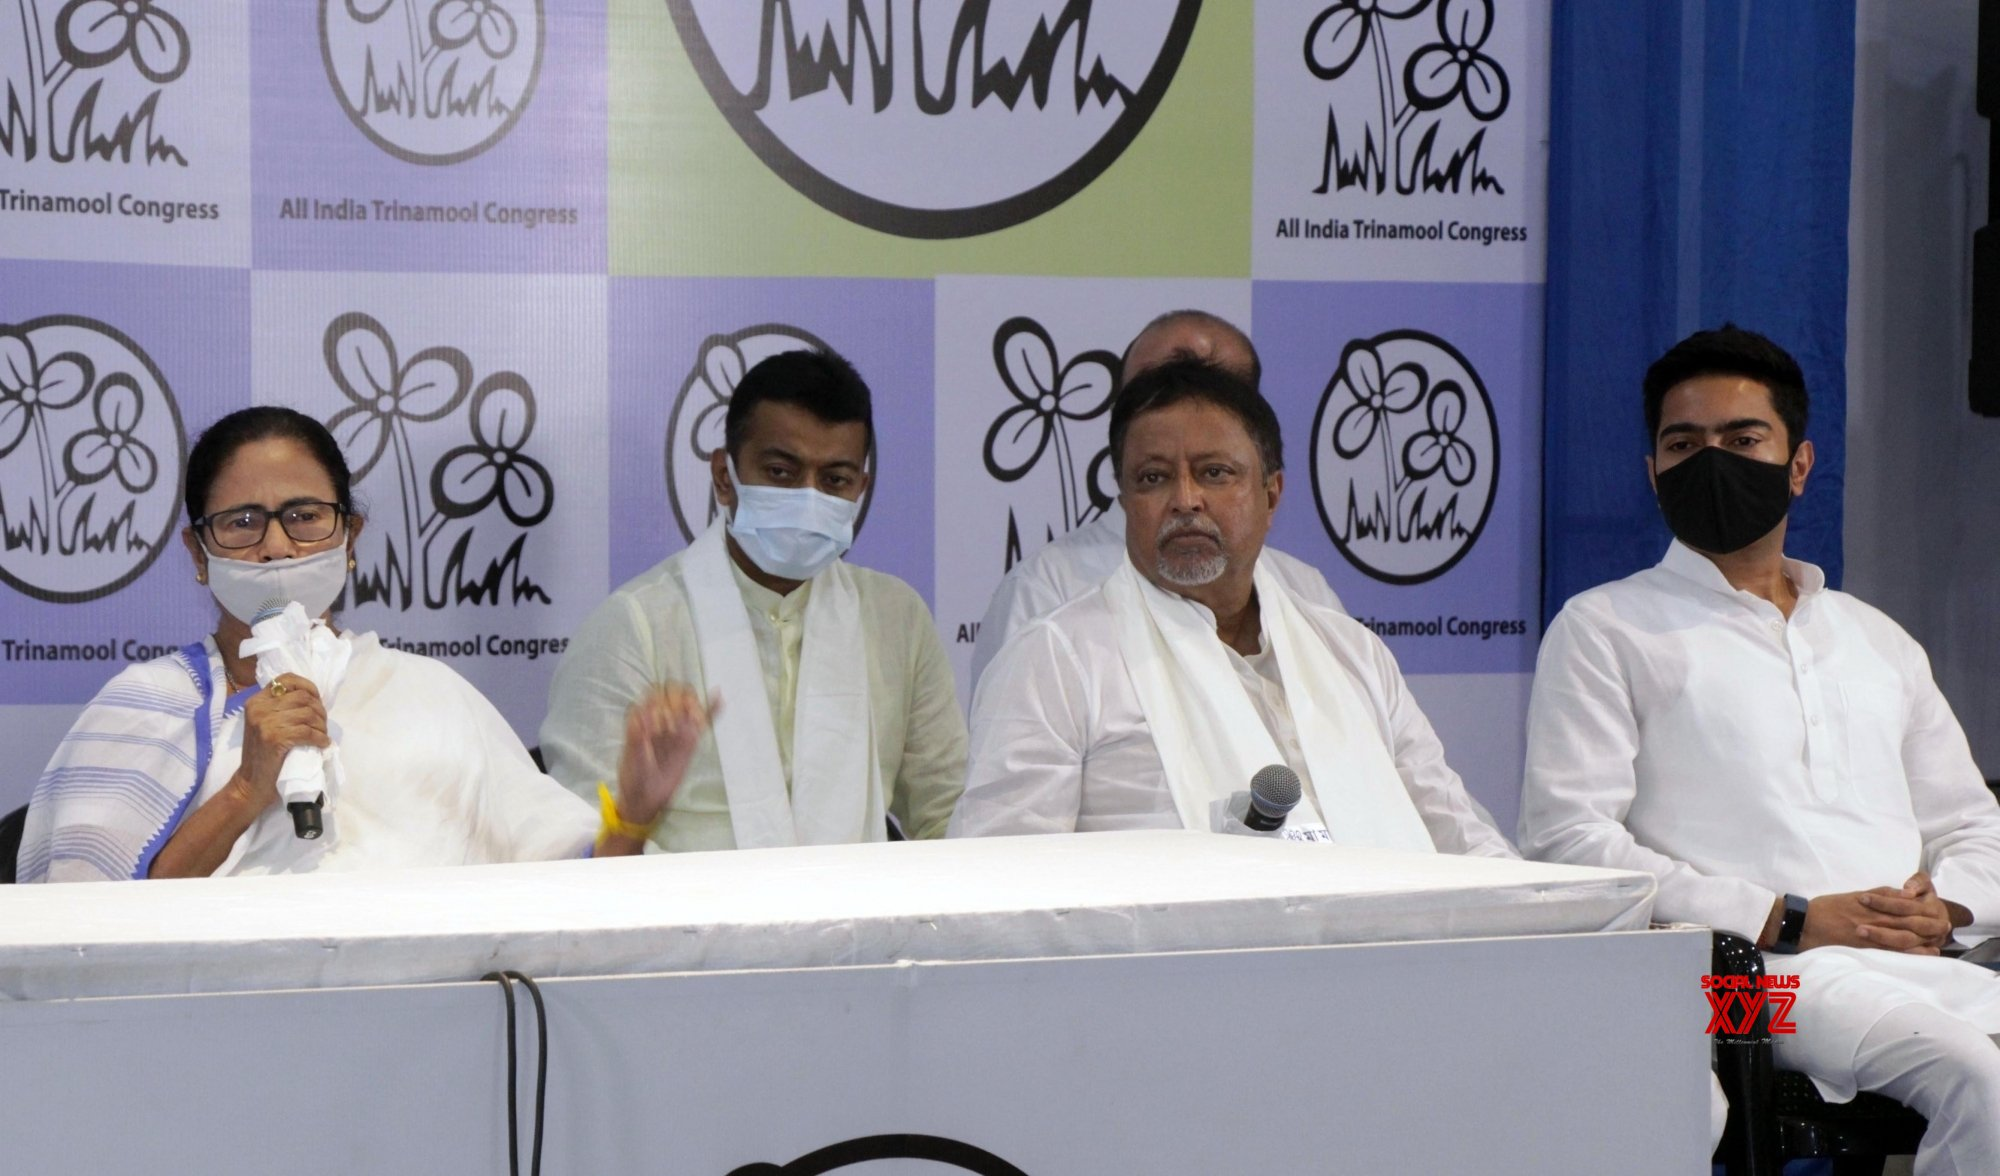 Kolkata: BJP leader Mukul Roy with his son rejoined TMC in presence of TMC Supremo and West Bengal Chief Minister Mamata Banerjee, party's National General Secretary Abhishek Banerjee and others at TMC Bhawan in Kolkata. #Gallery